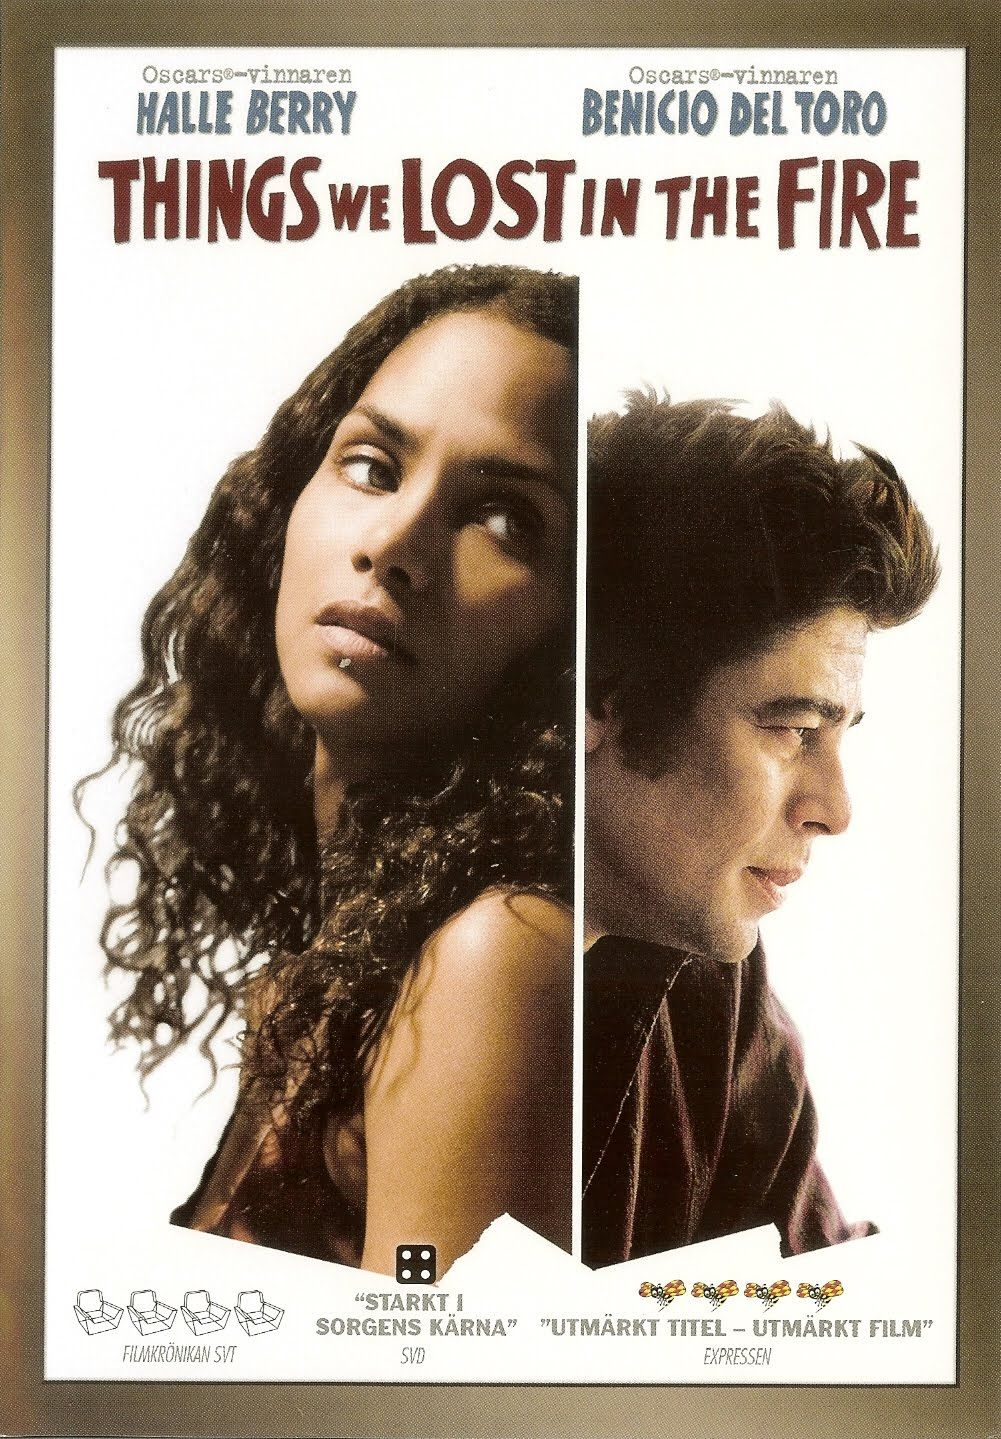 Things We Lost in the Fire (Coisas que Perdemos pelo